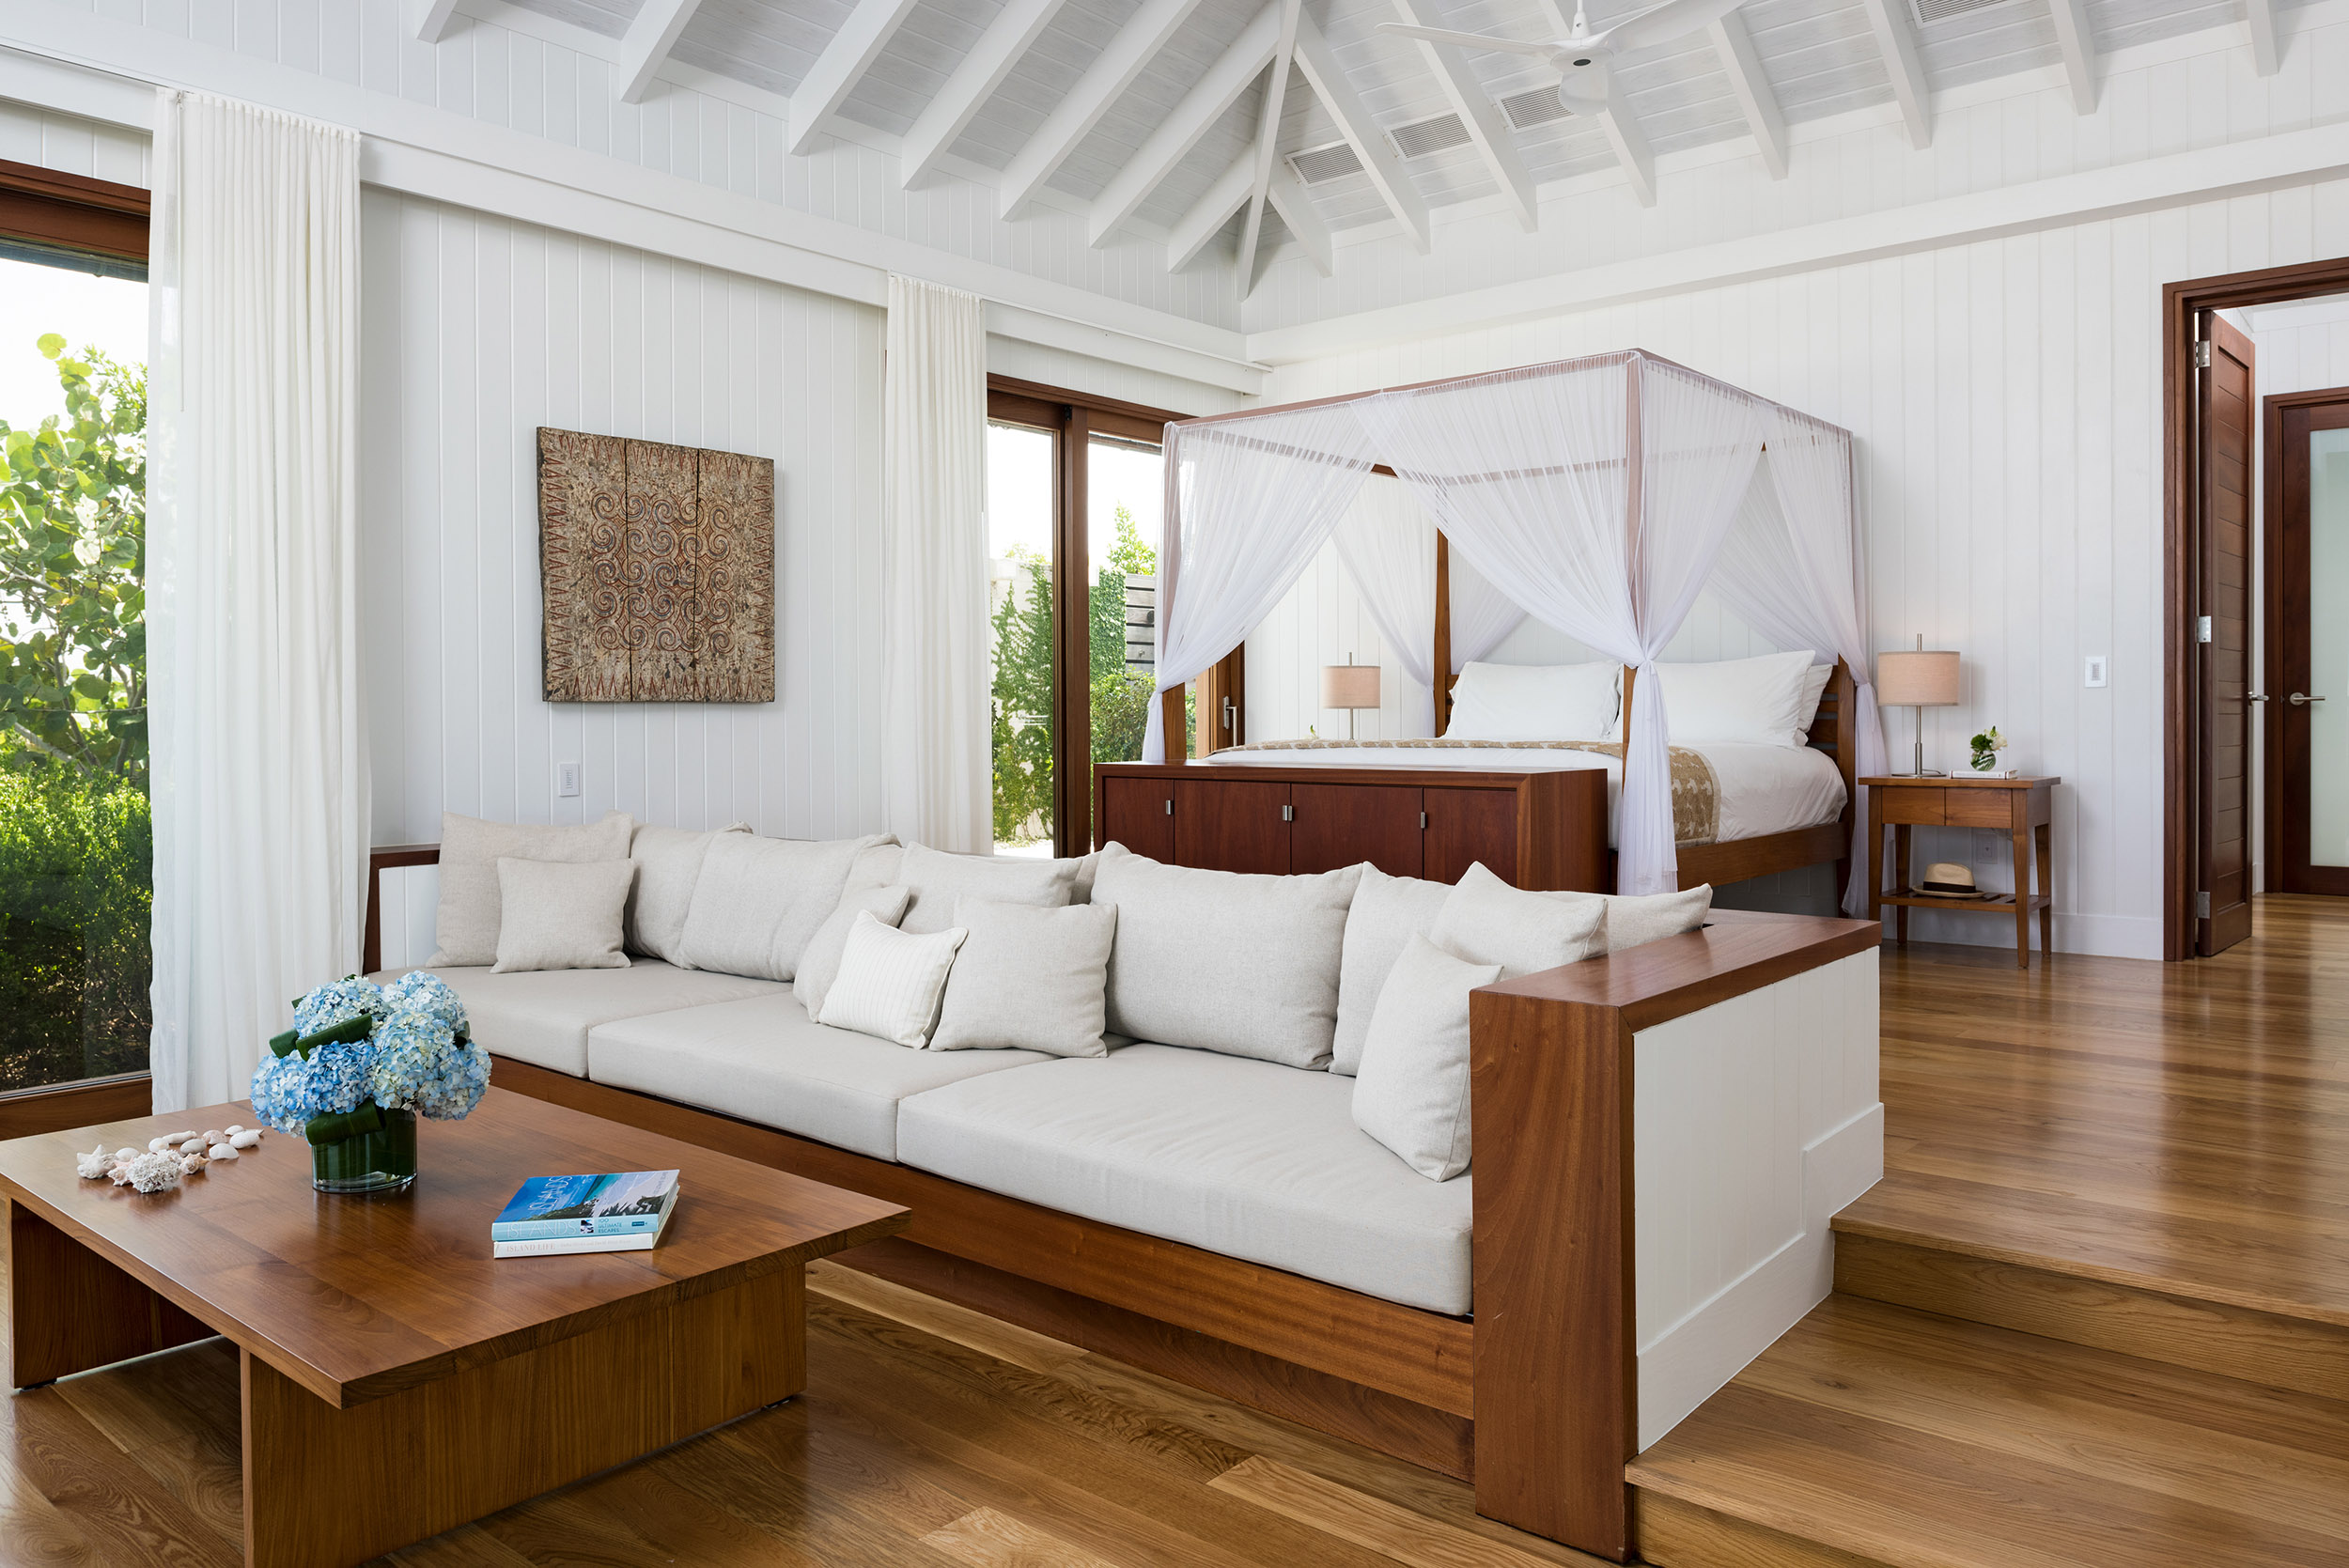 Serenity - view of the master bedroom seating area